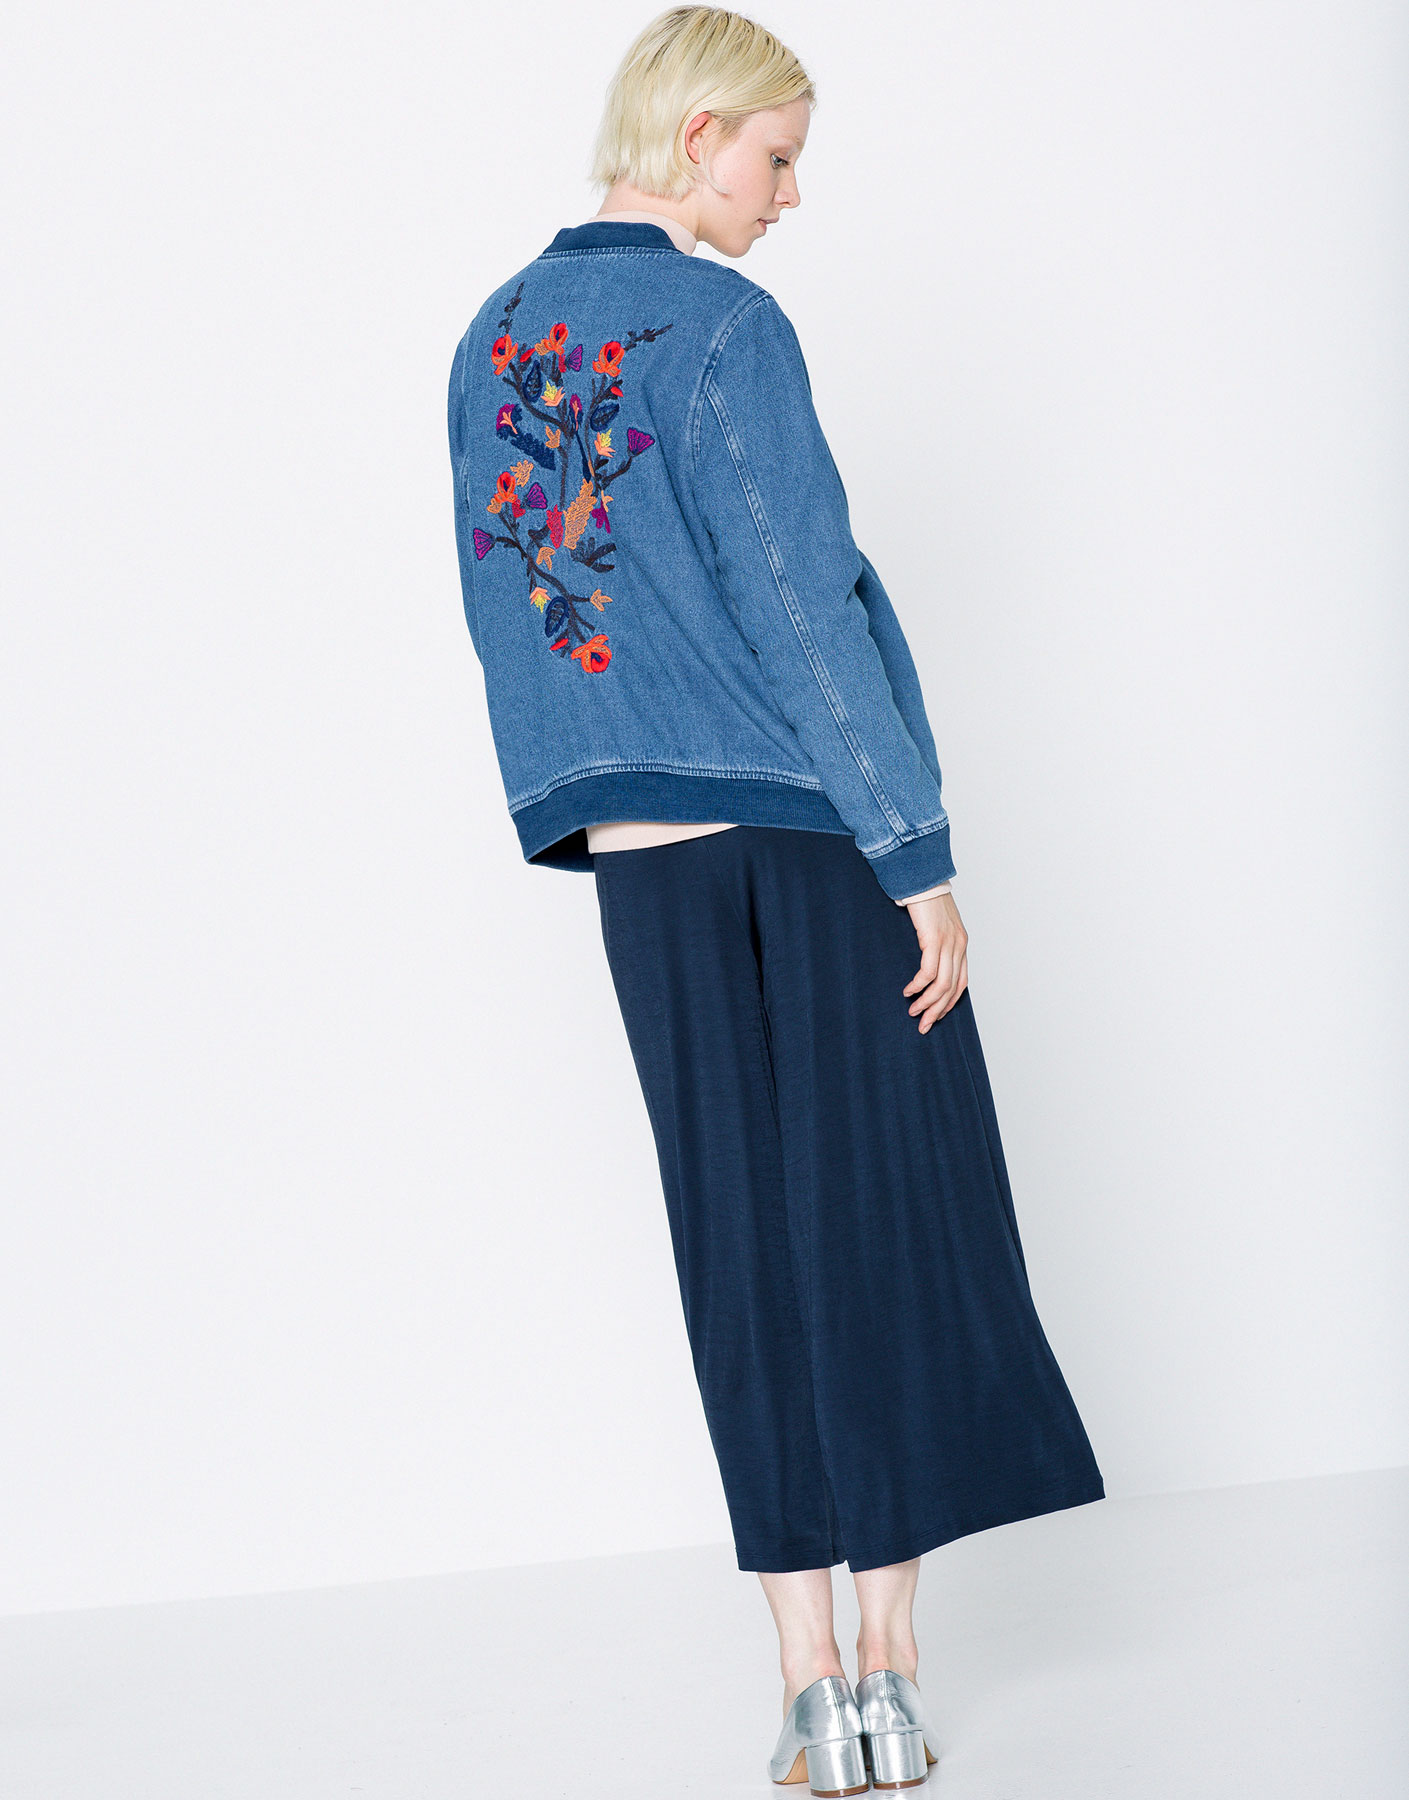 Denim bomber jacket with embroidery on back